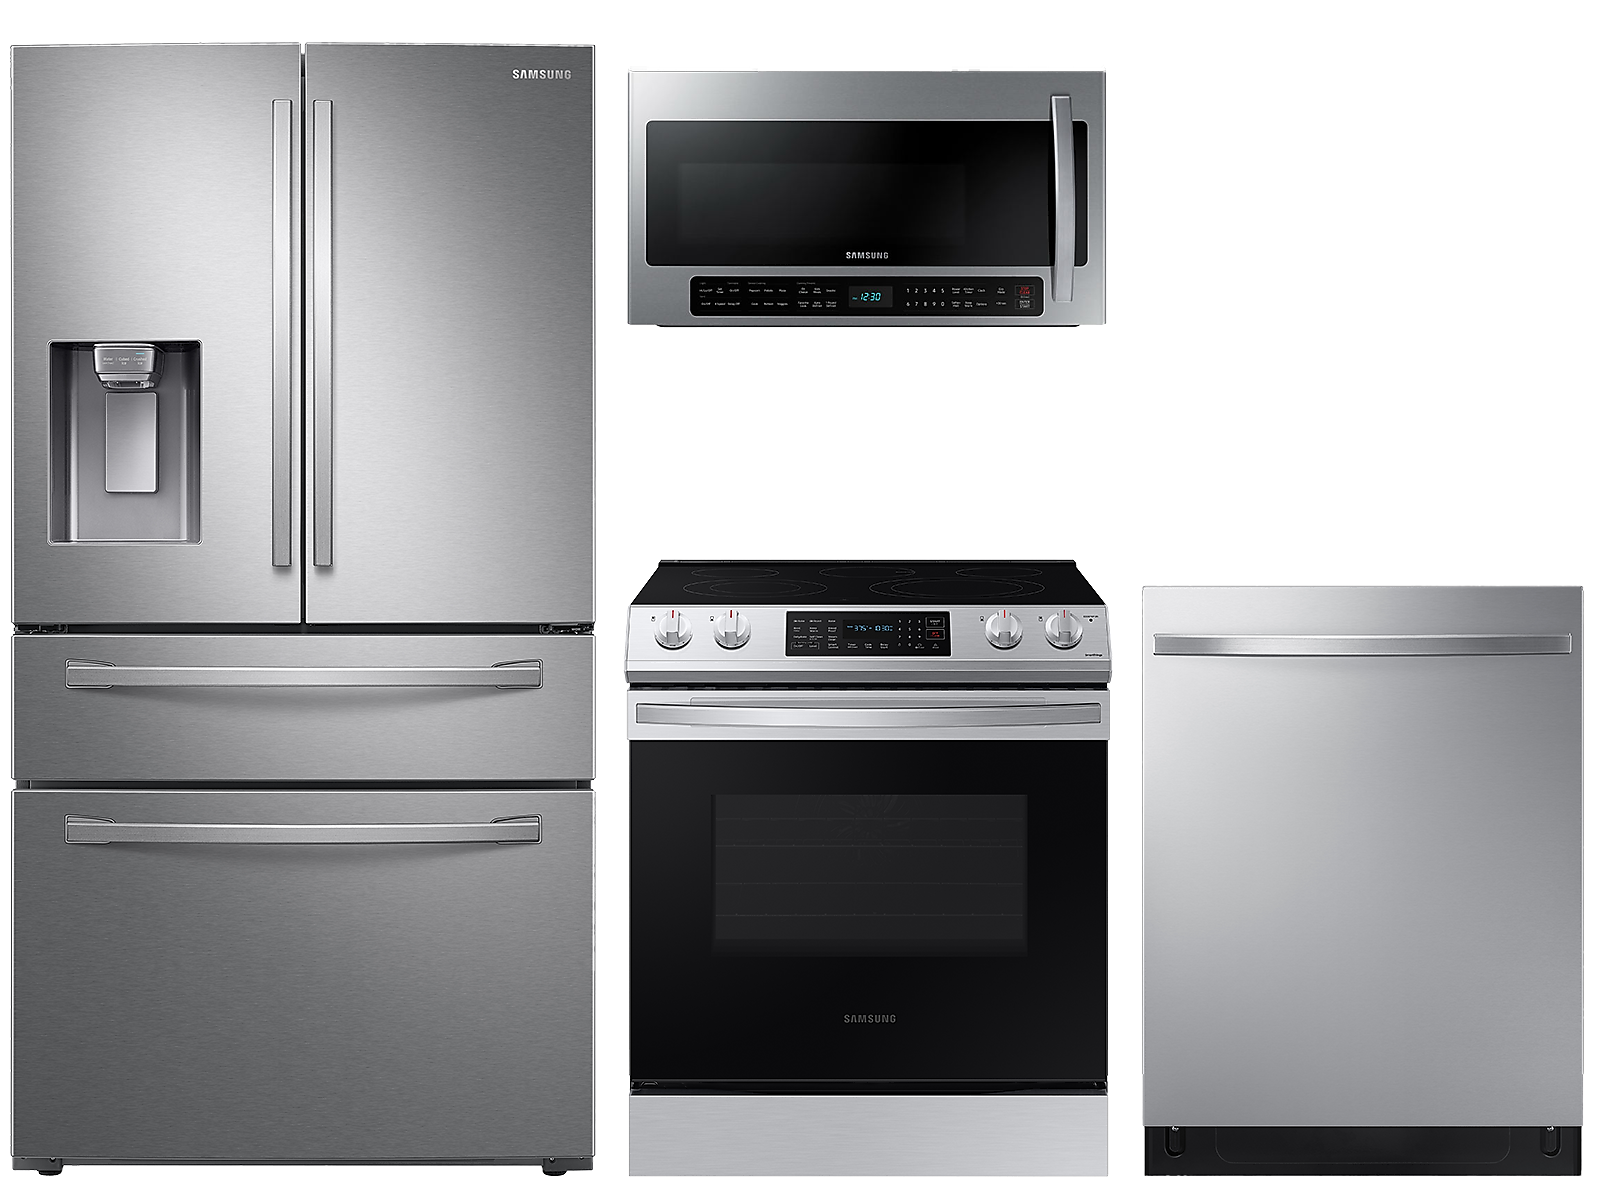 Samsung coupon: Samsung 23 cu. ft. counter depth 4-door refrigerator, 6.3 cu. ft. electric range, 2.1 cu. ft. microwave and 48 dBA modern-look dishwasher package